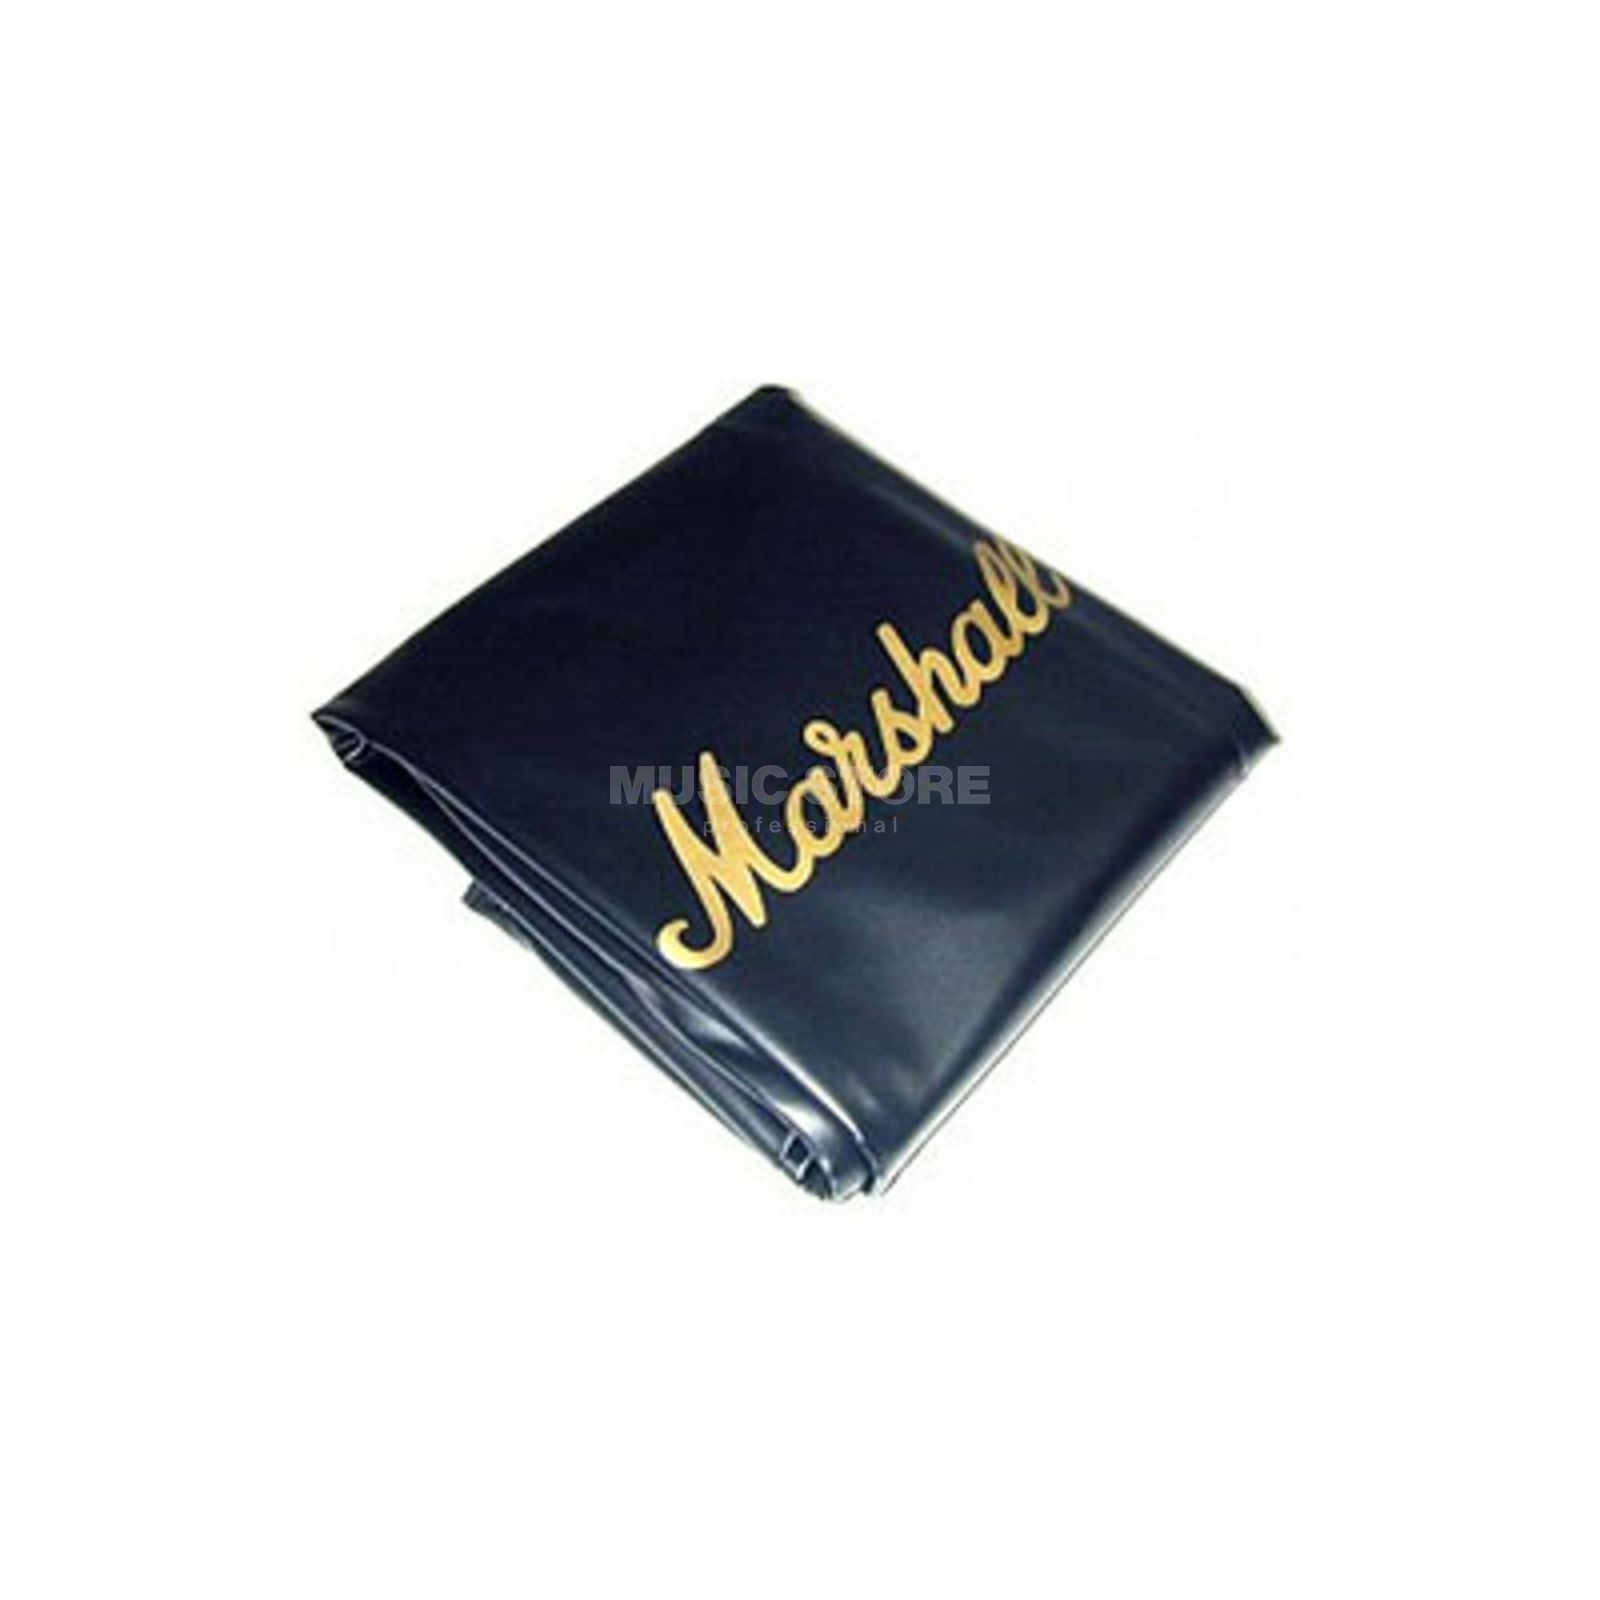 Marshall Cover f. VBA400 Head MRCOVR00058 Produktbild